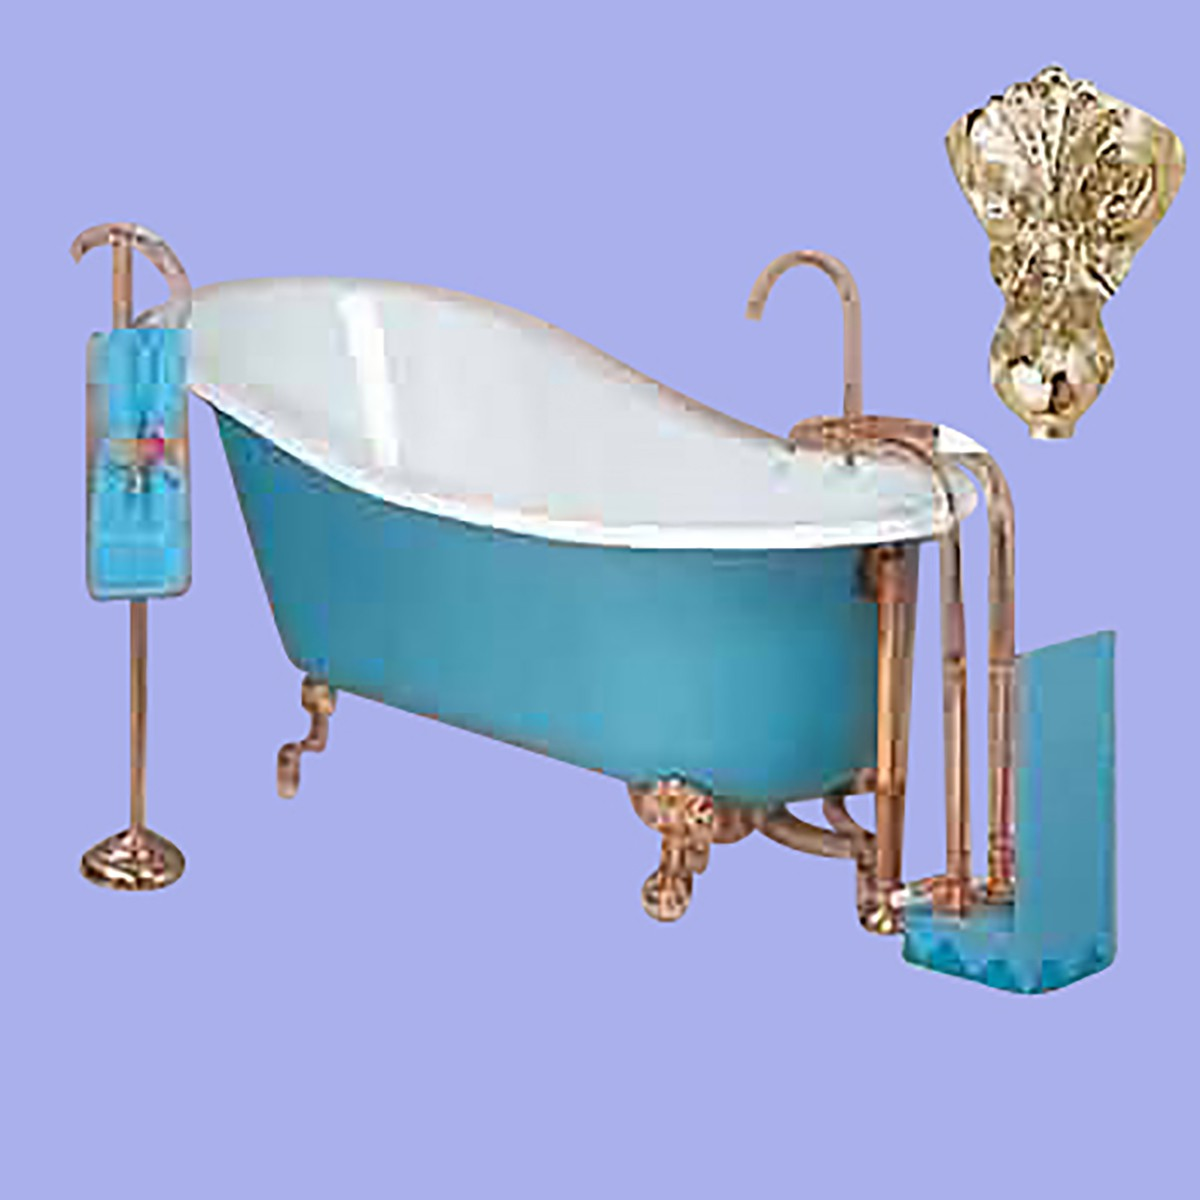 High Back Claw Foot Tub - home decor - Decordova.us